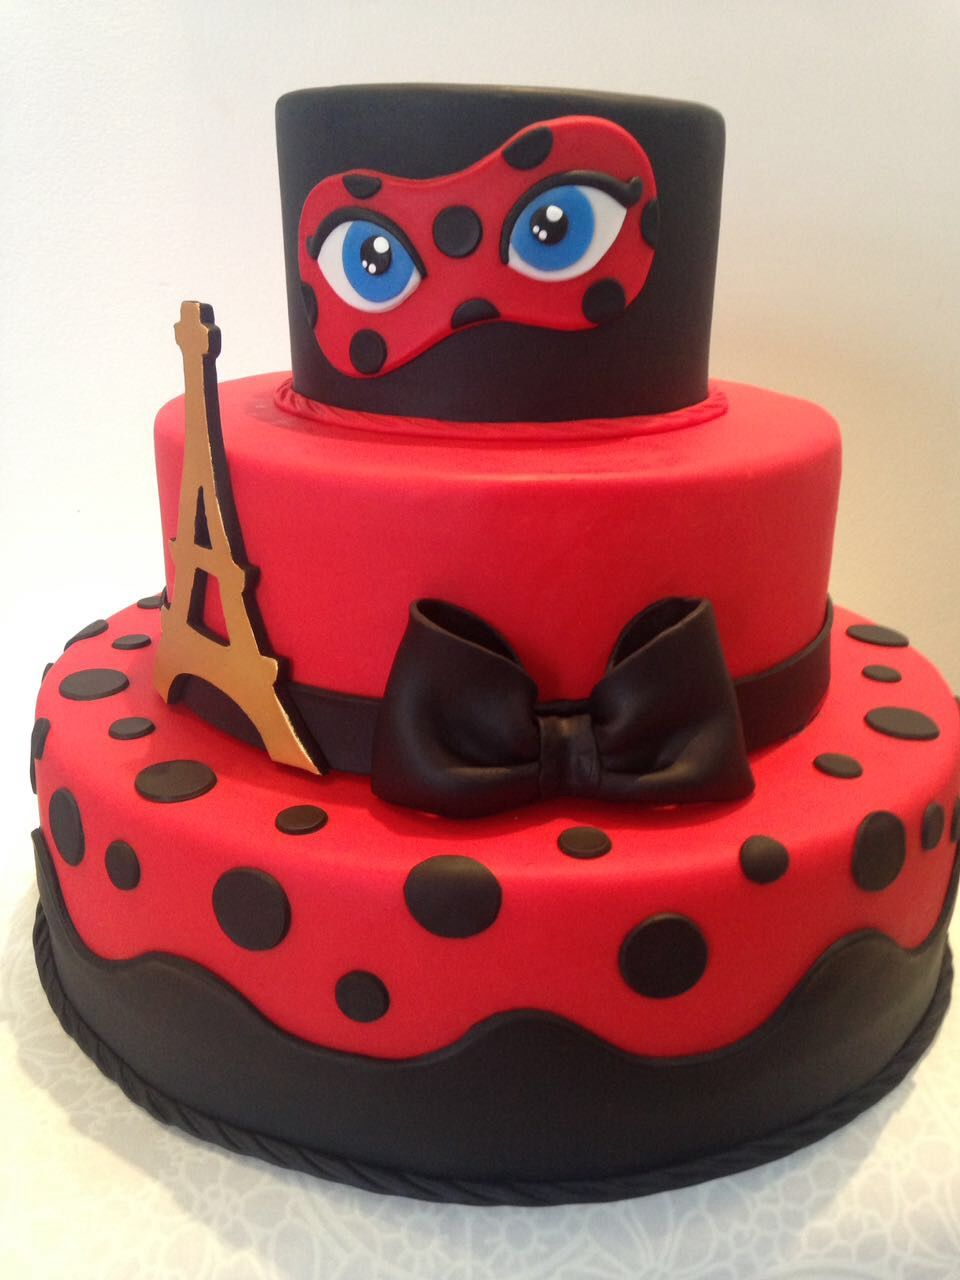 pin by luciana vignatti on cakes pinterest ladybug lady bugs